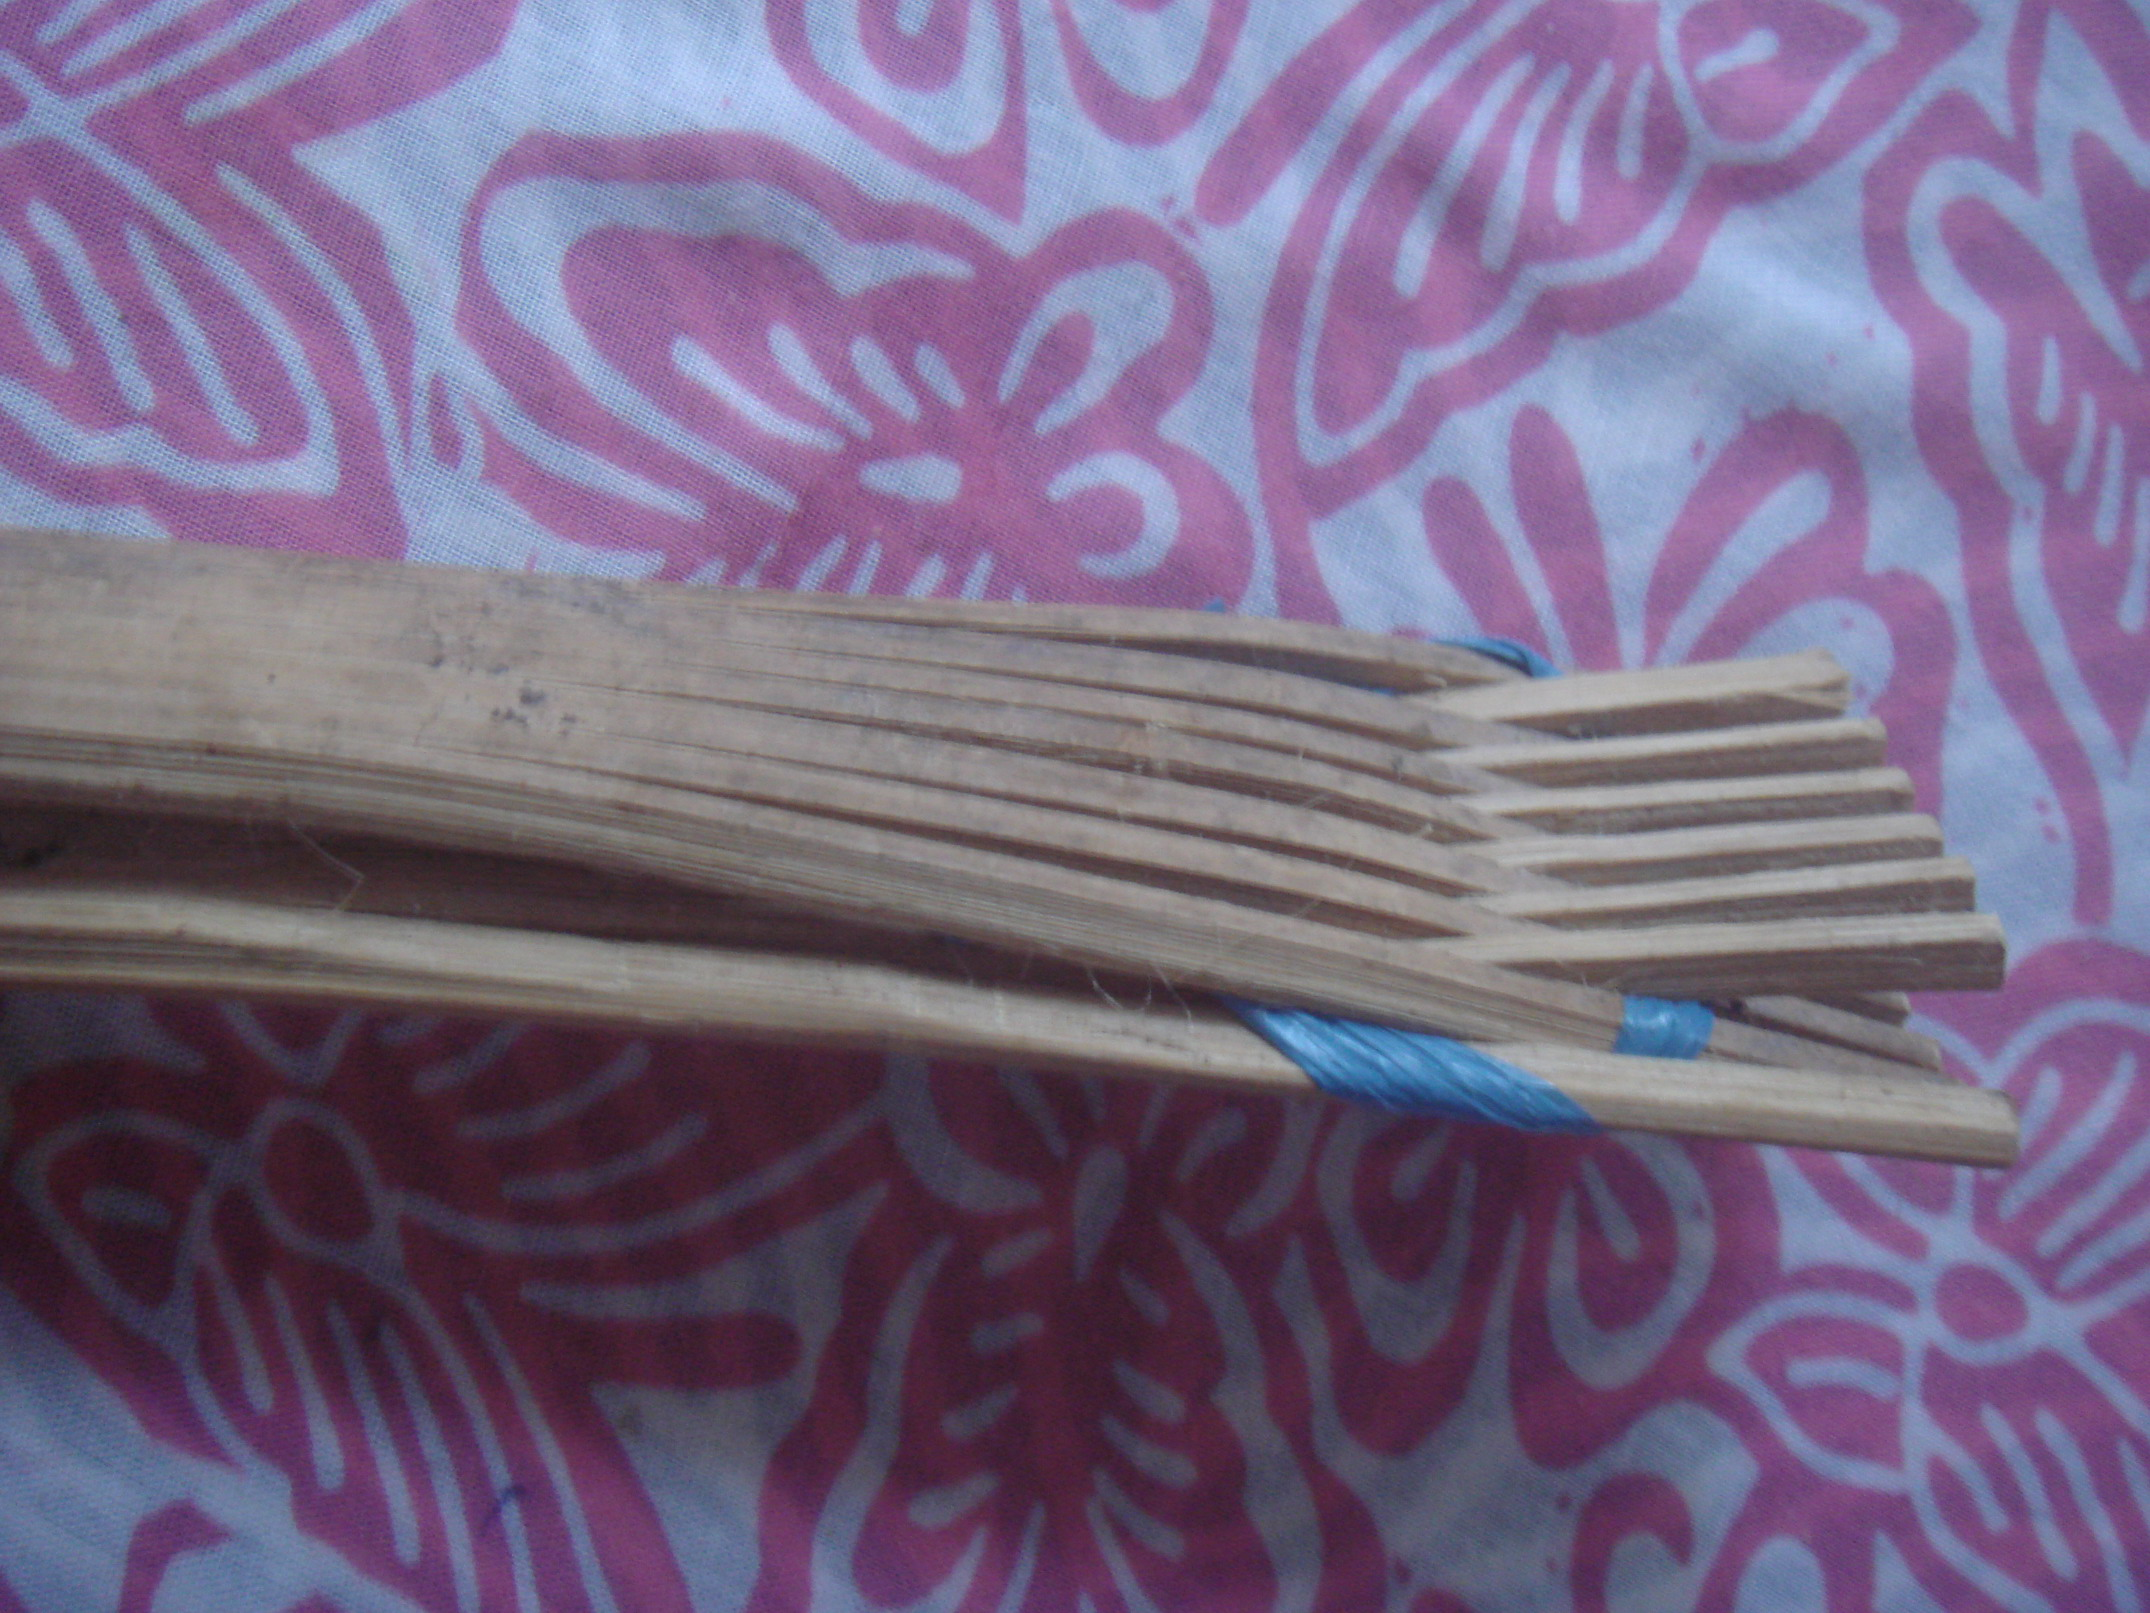 Picture of Bamboo Tongs for Salad, Teflon-pan Cooking, Barbecue, Grill, Etc